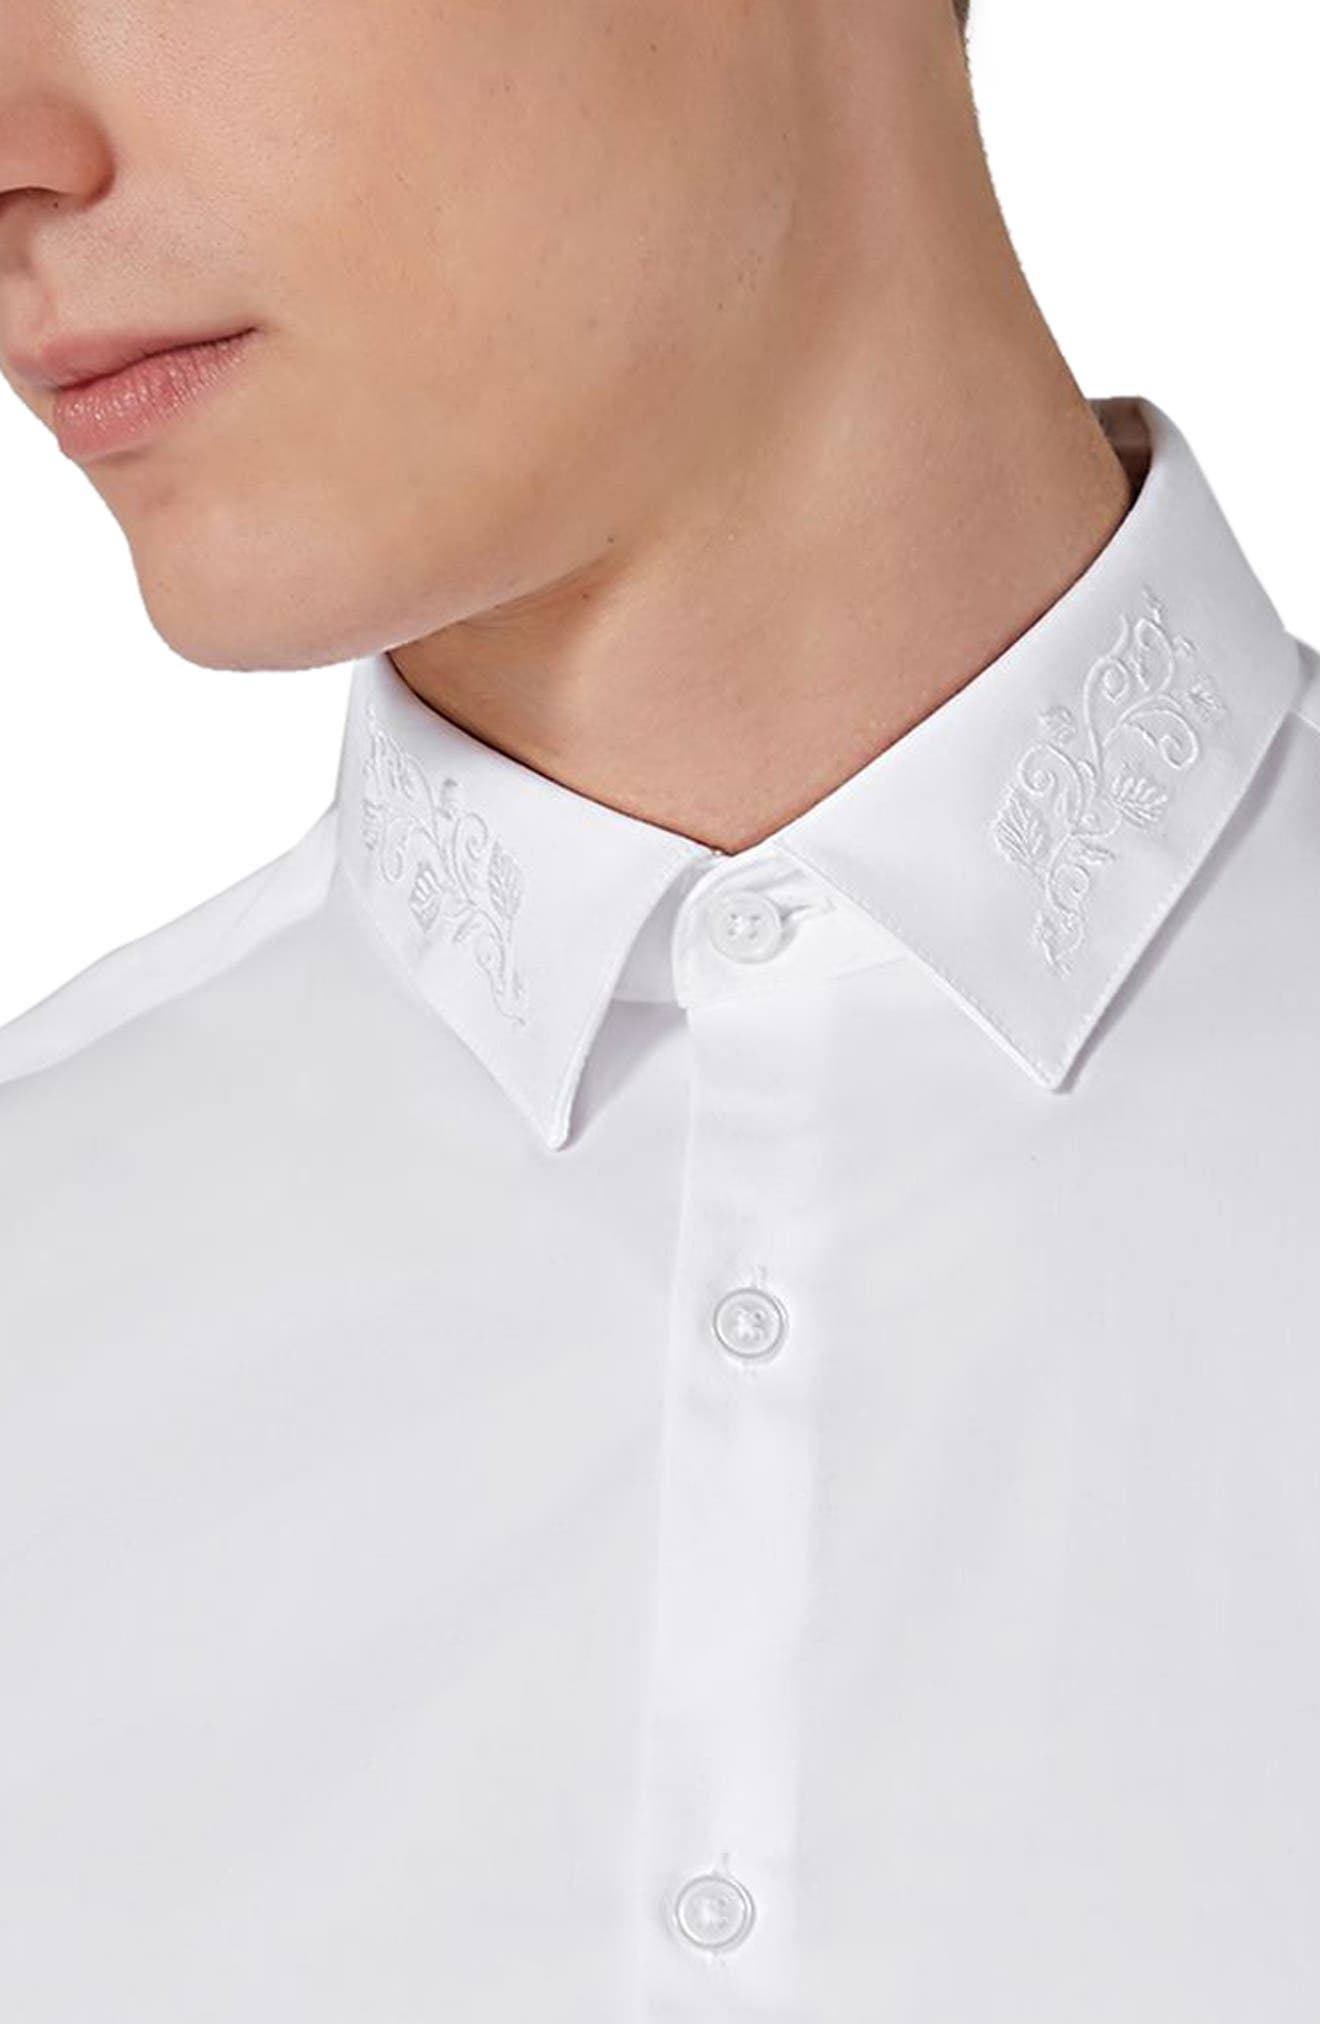 Slim Fit Embroidered Collar Dress Shirt,                             Alternate thumbnail 4, color,                             White